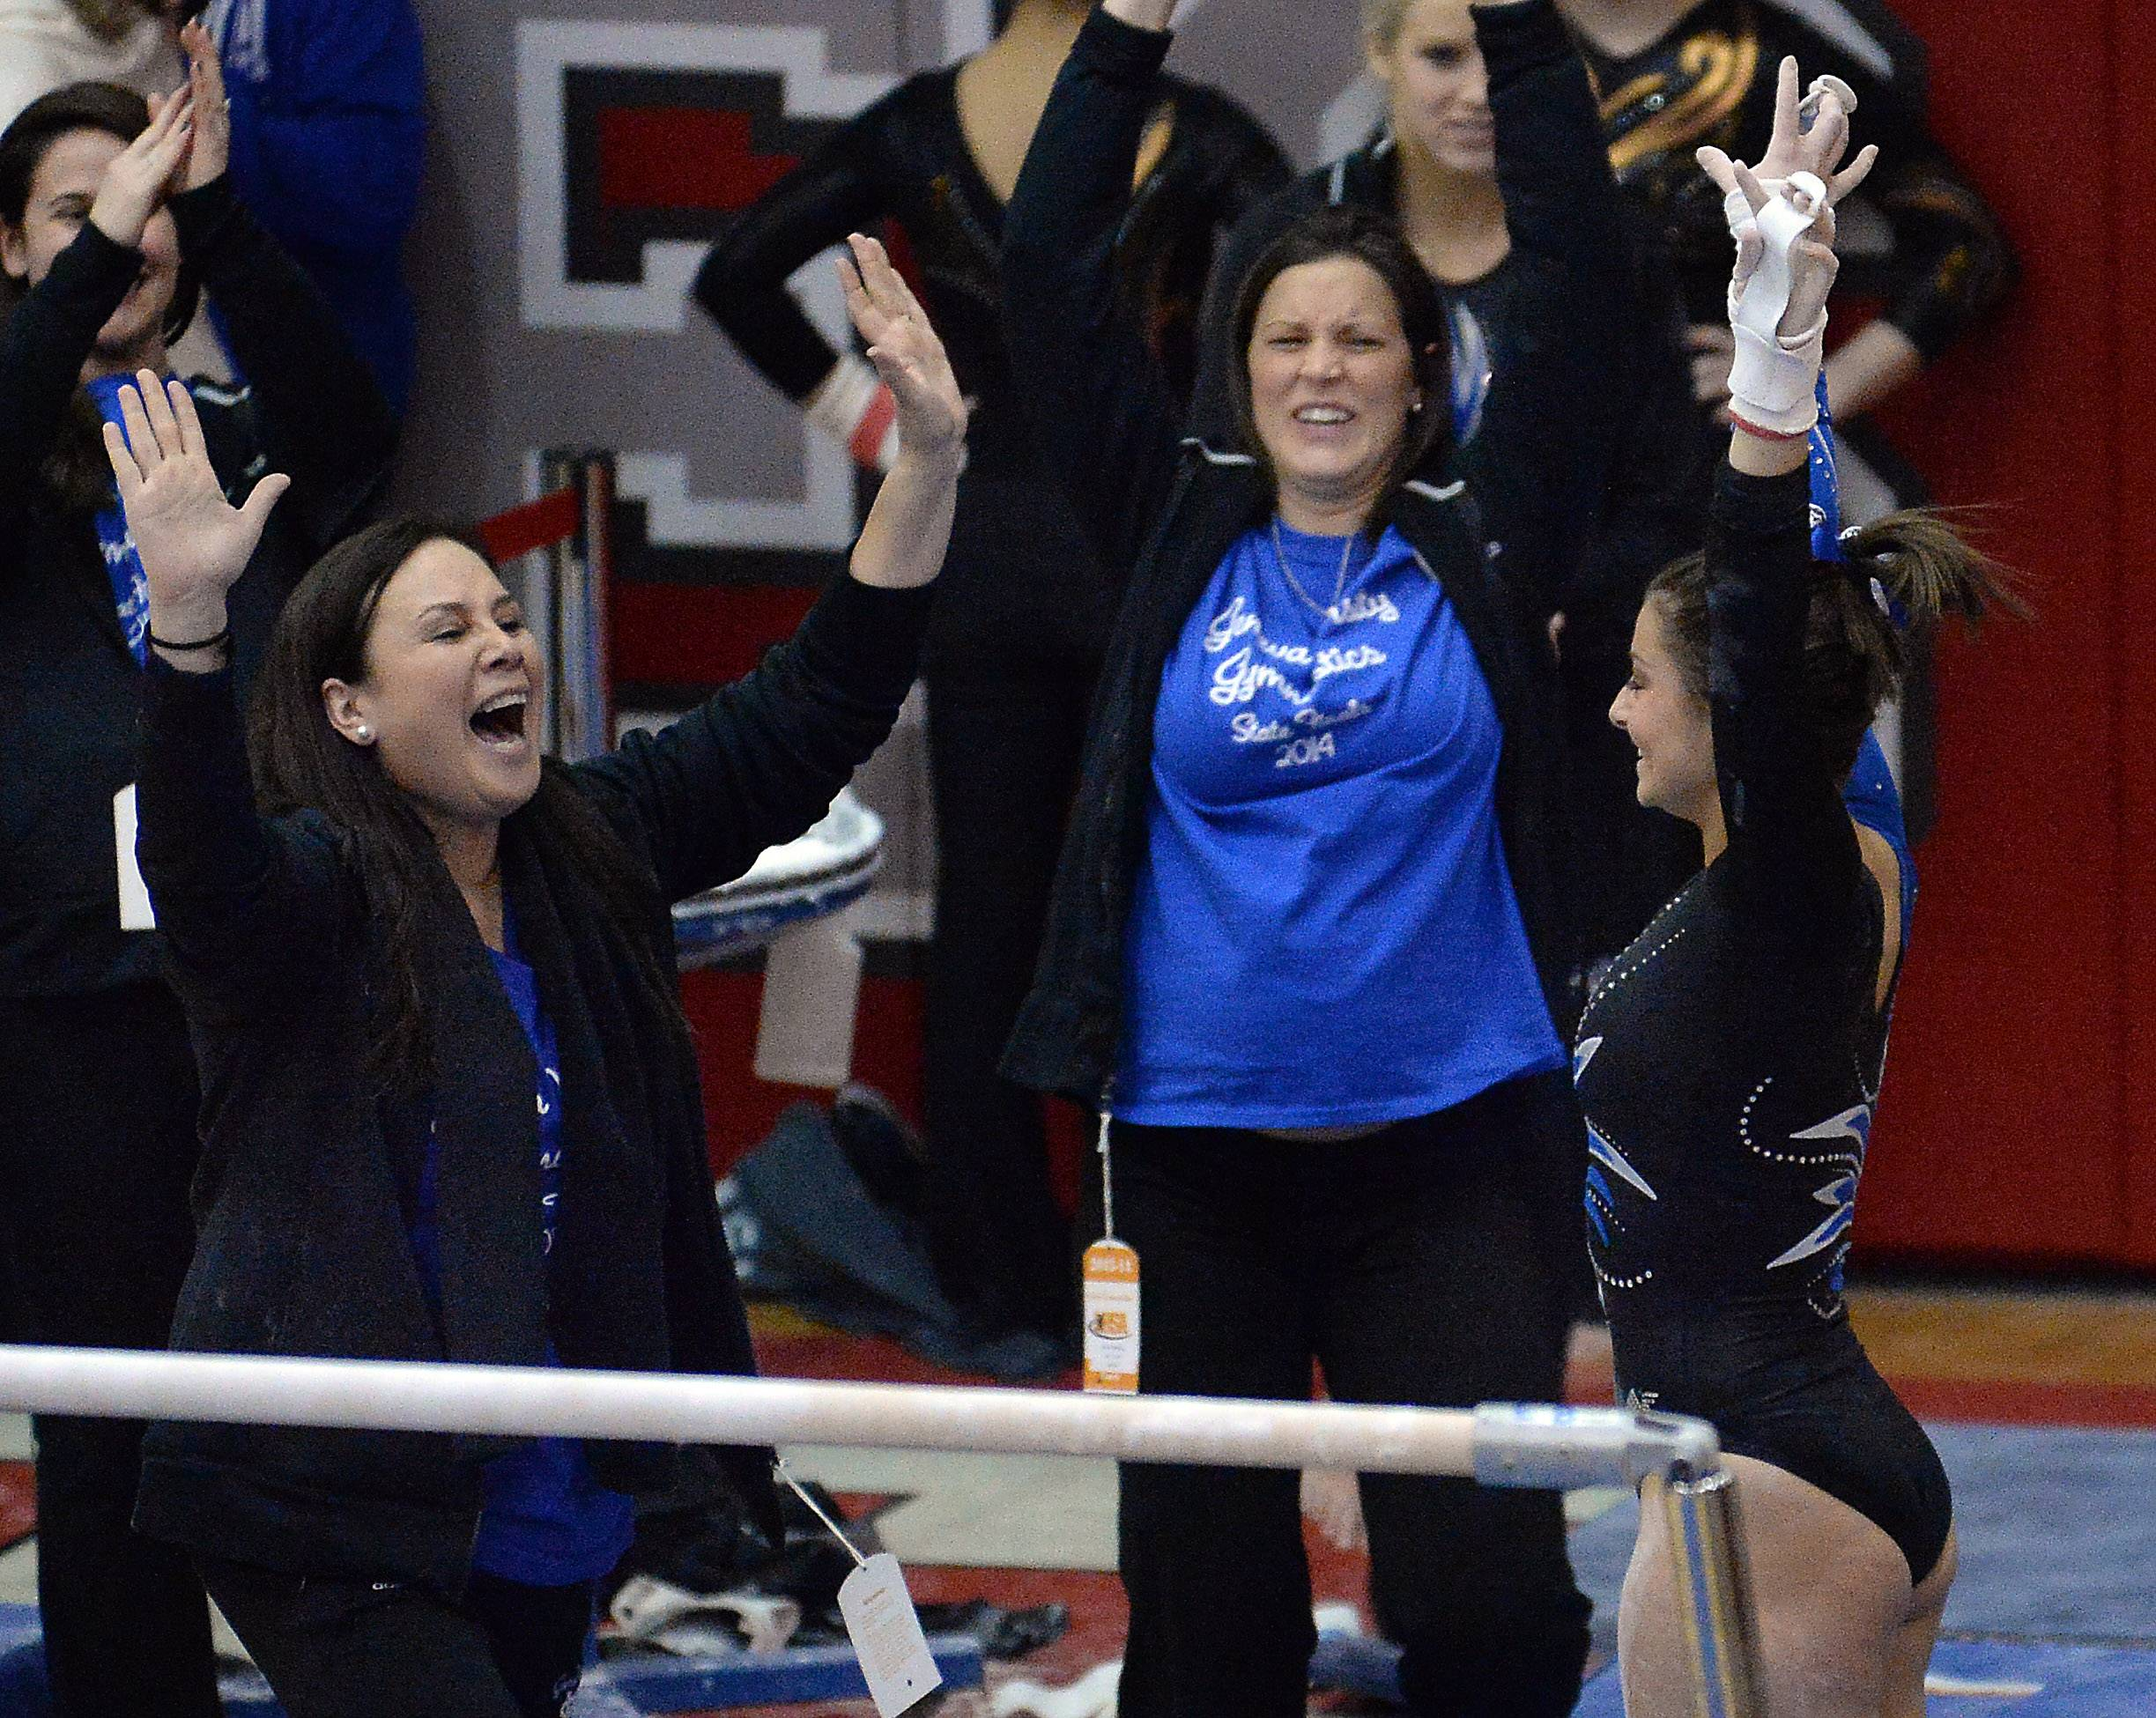 Geneva's Dominique Brognia celebrates her routine with her coach after competing on the uneven parallel bars.